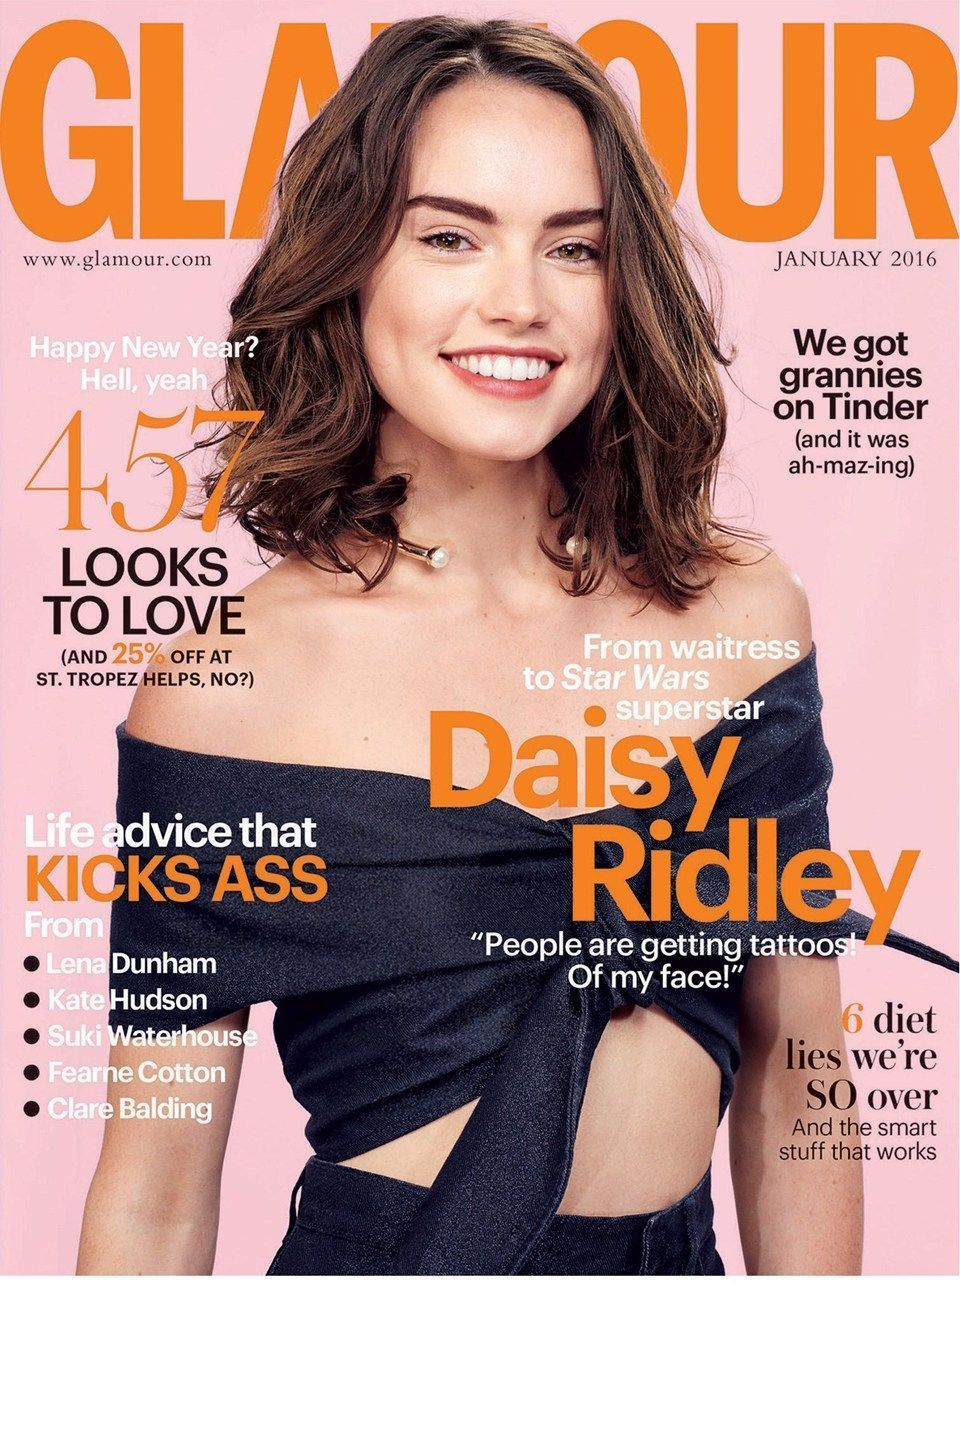 Daisy Ridley plays Star Wars themed Would you rather?,#daisy #plays #rather #ridley #themed #would #starwarsmakeup Daisy Ridley plays Star Wars themed Would you rather?,#daisy #plays #rather #ridley #themed #would #starwarsmakeup